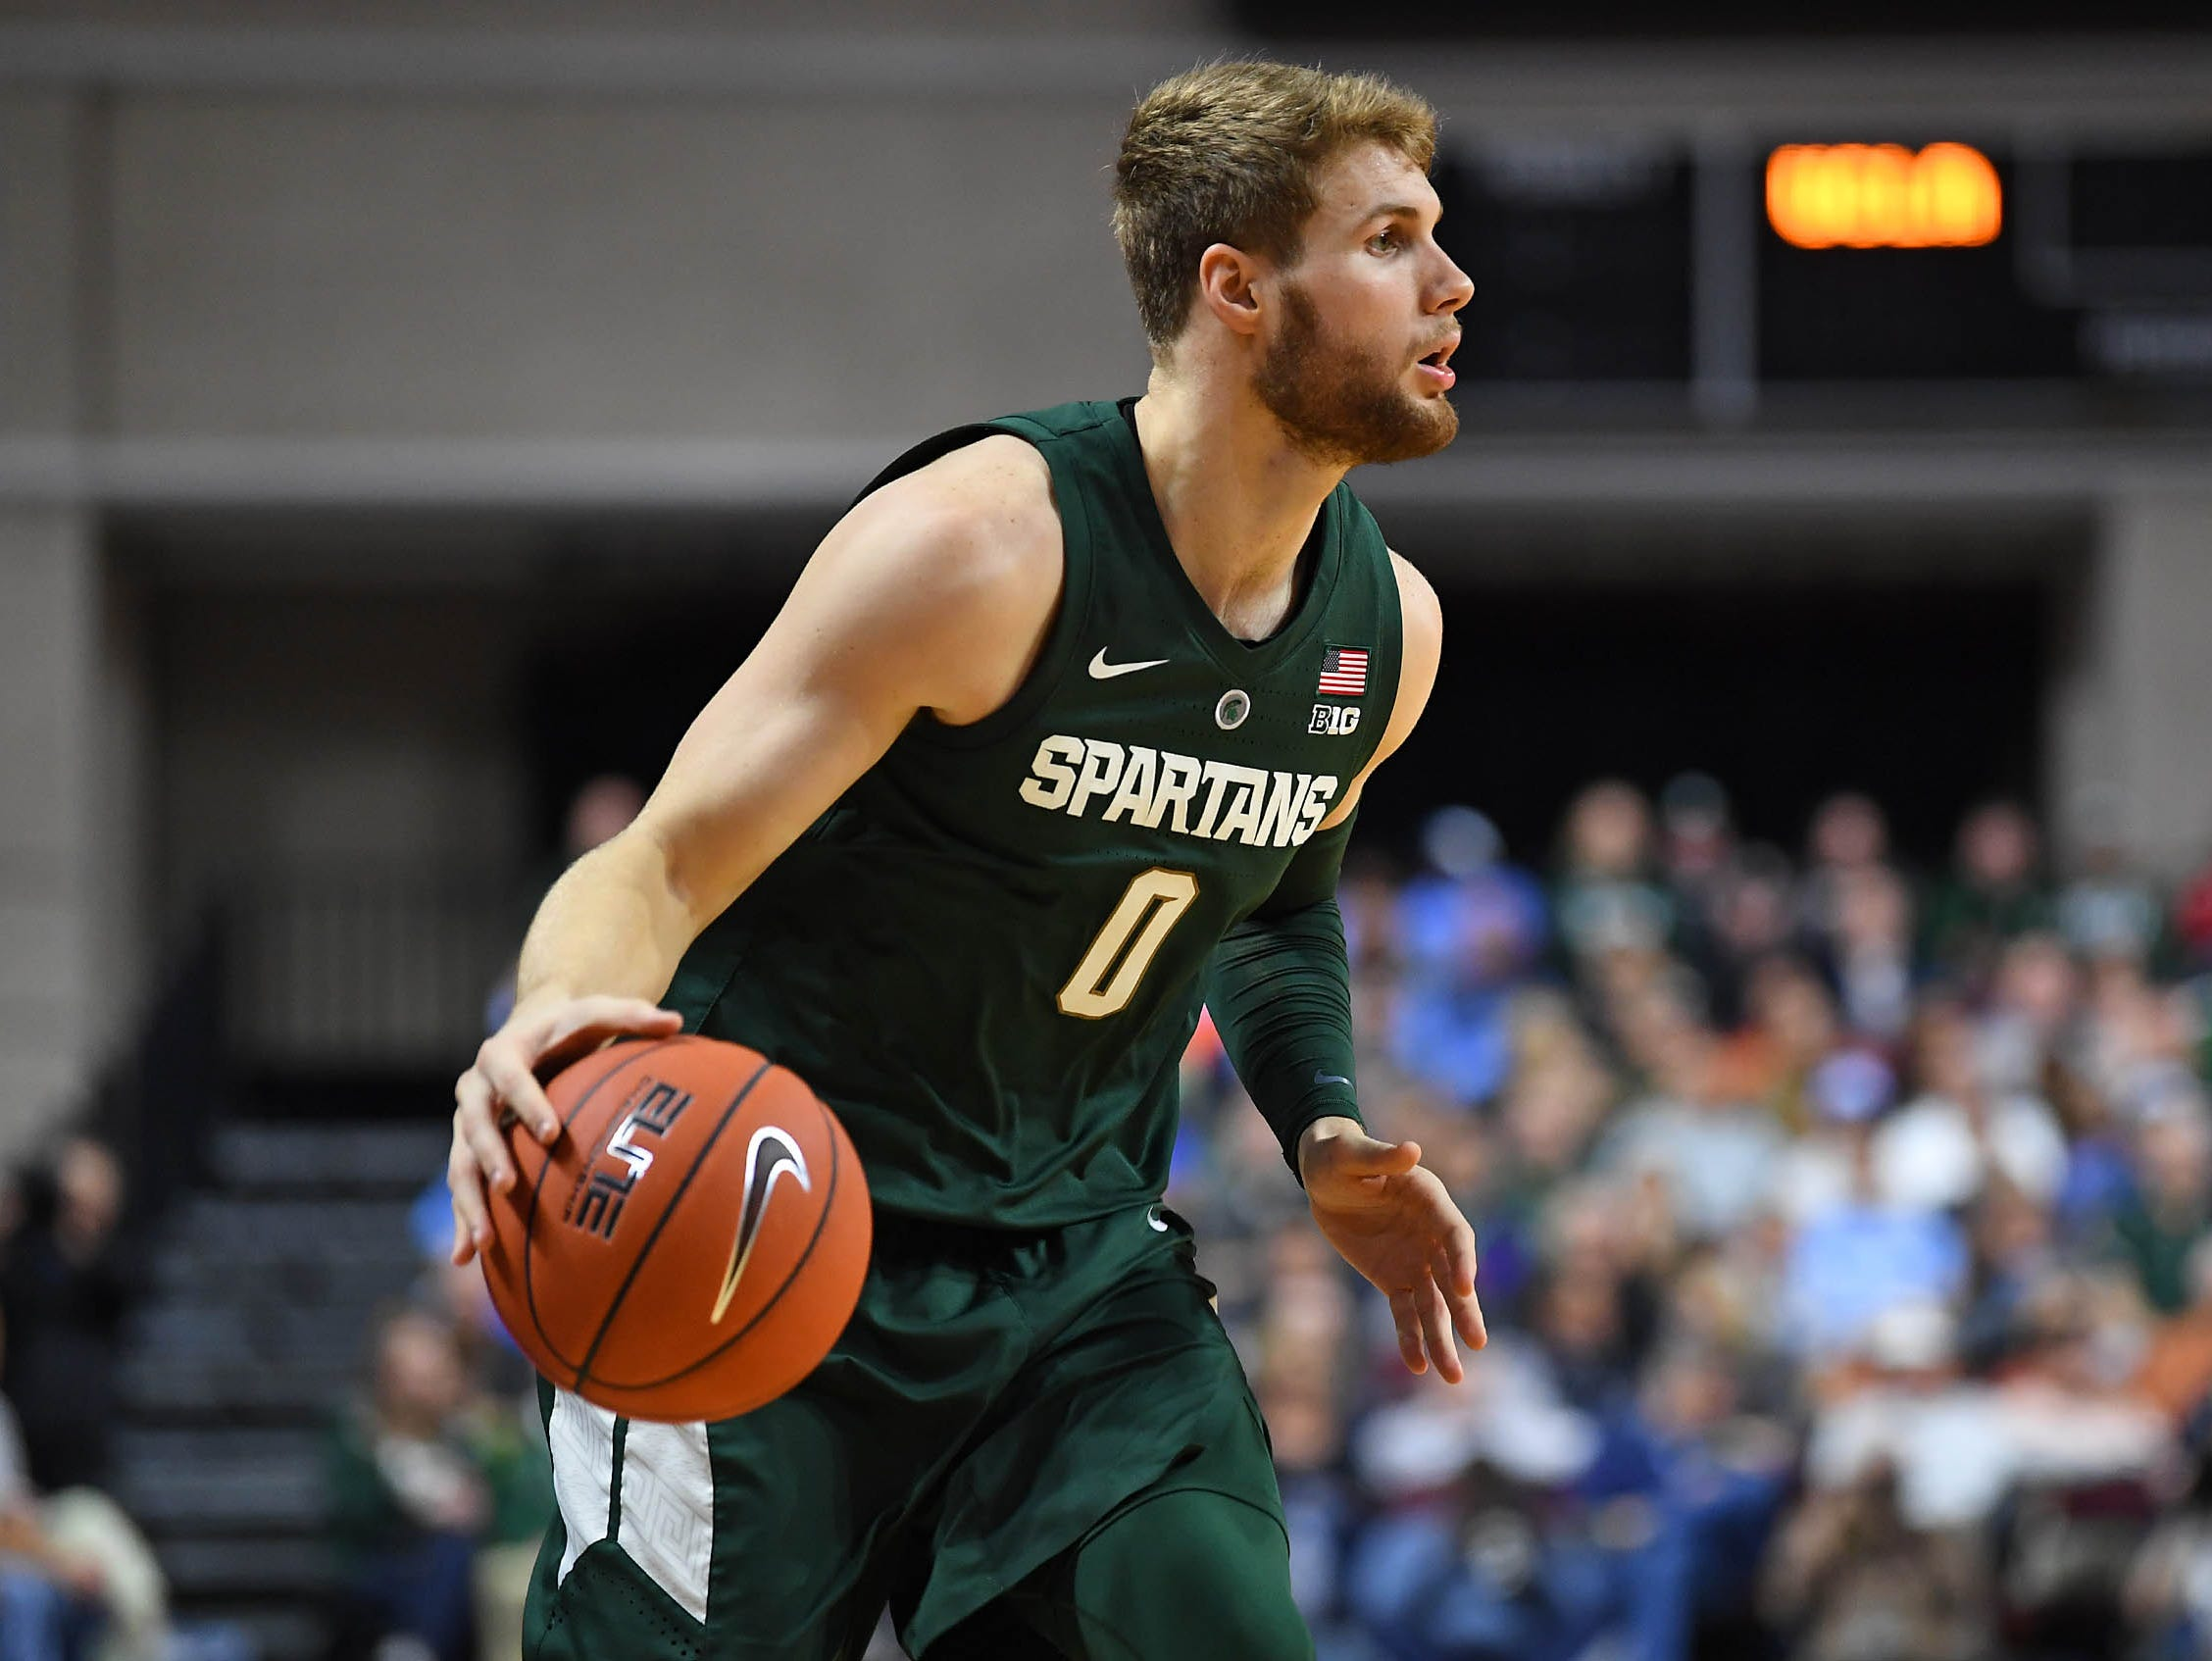 Michigan State Spartans forward Kyle Ahrens (0) dribbles during the first half against the UCLA Bruins at Orleans Arena.